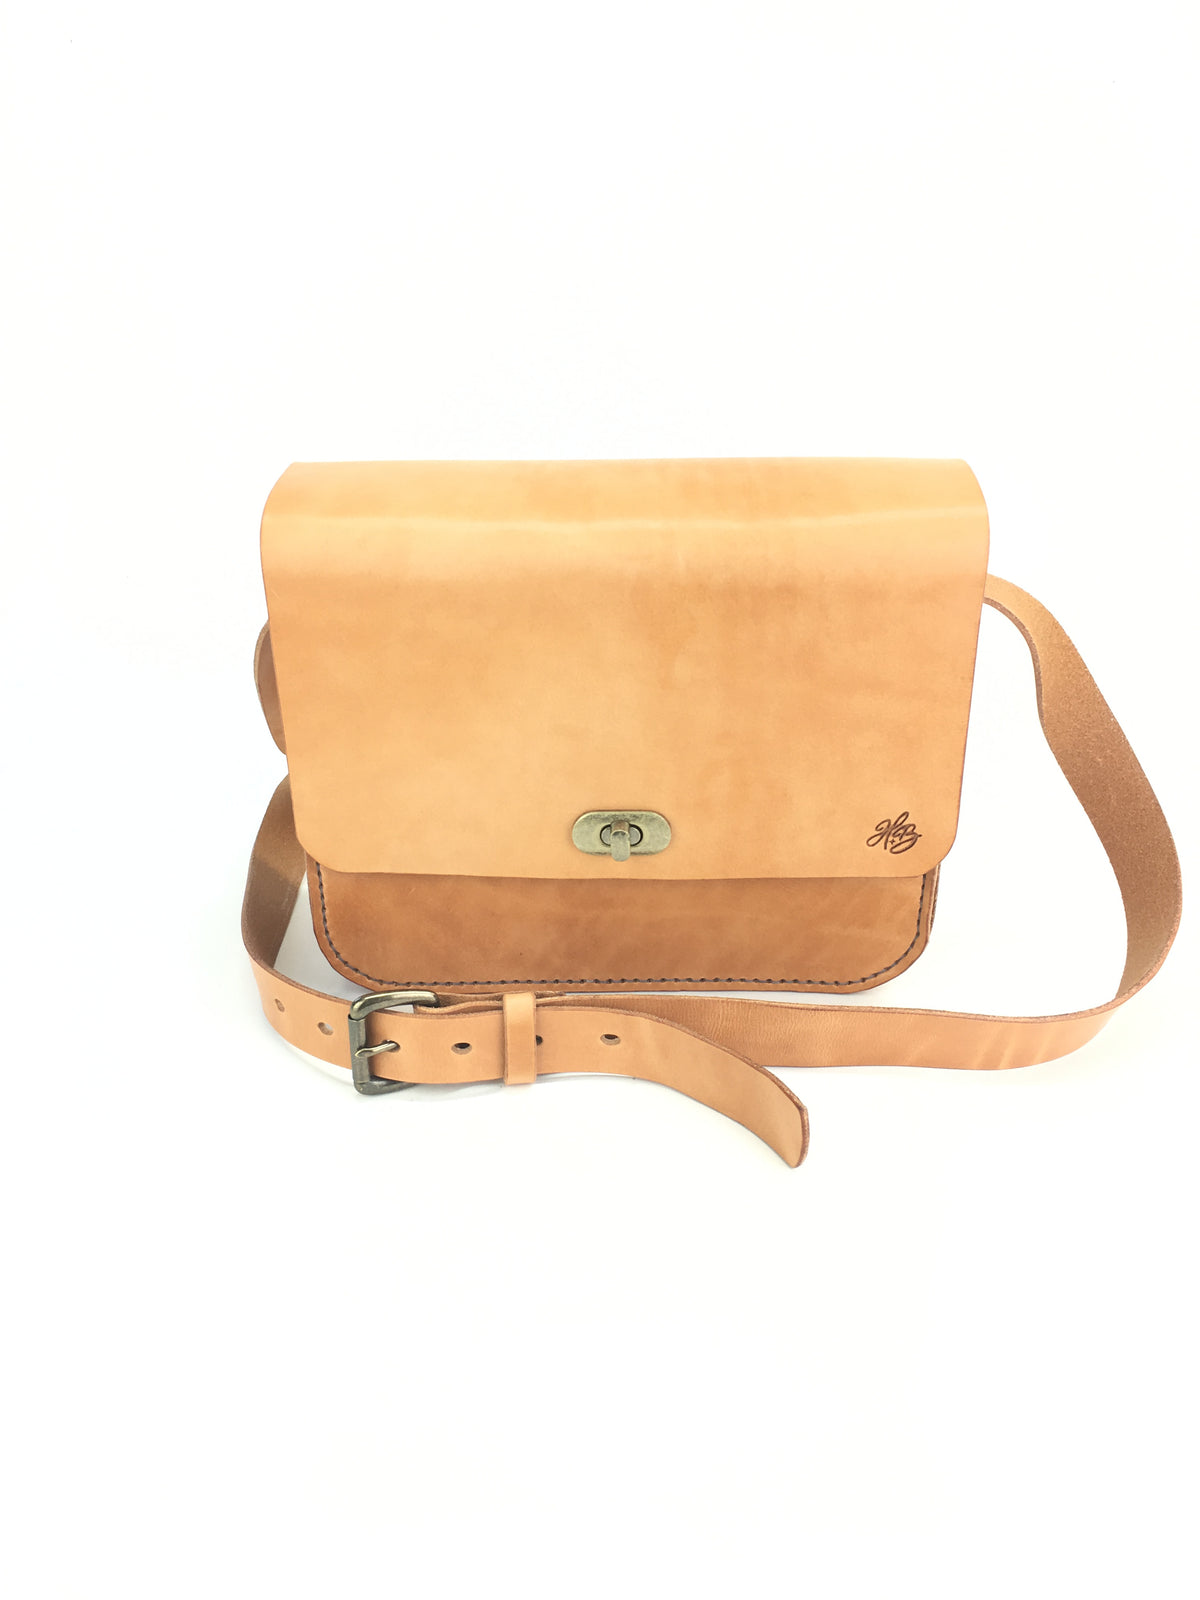 H+B WILSON CROSSBODY PURSE - RUSSET LEATHER